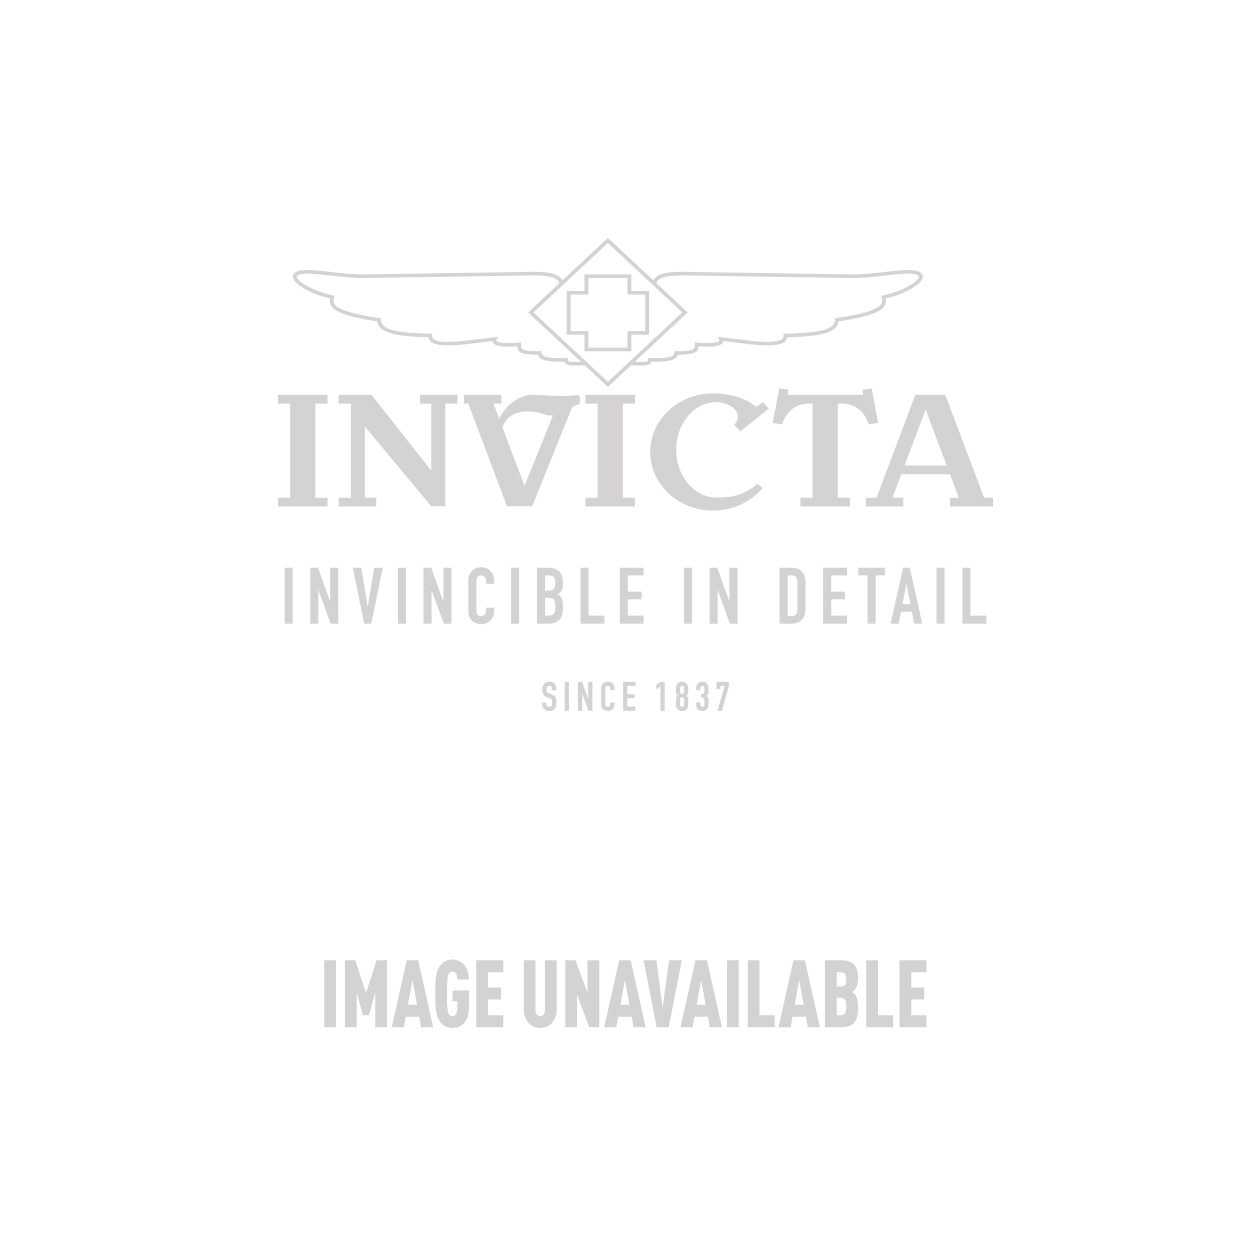 Invicta Specialty Quartz Watch - Stainless Steel case with Black tone Polyurethane band - Model 12846